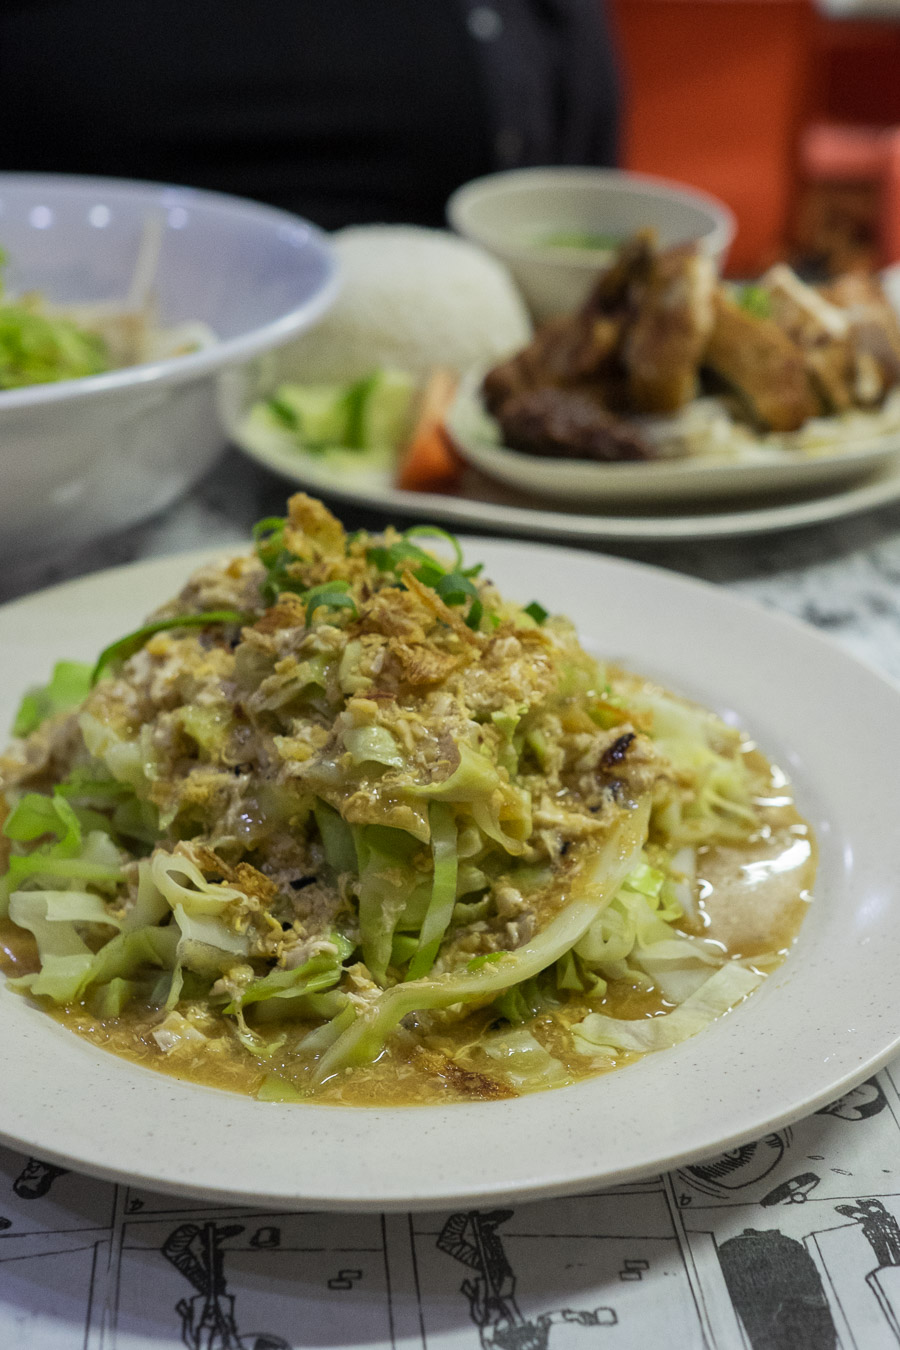 Fried cabbage with egg and chilli (AU$7.50)